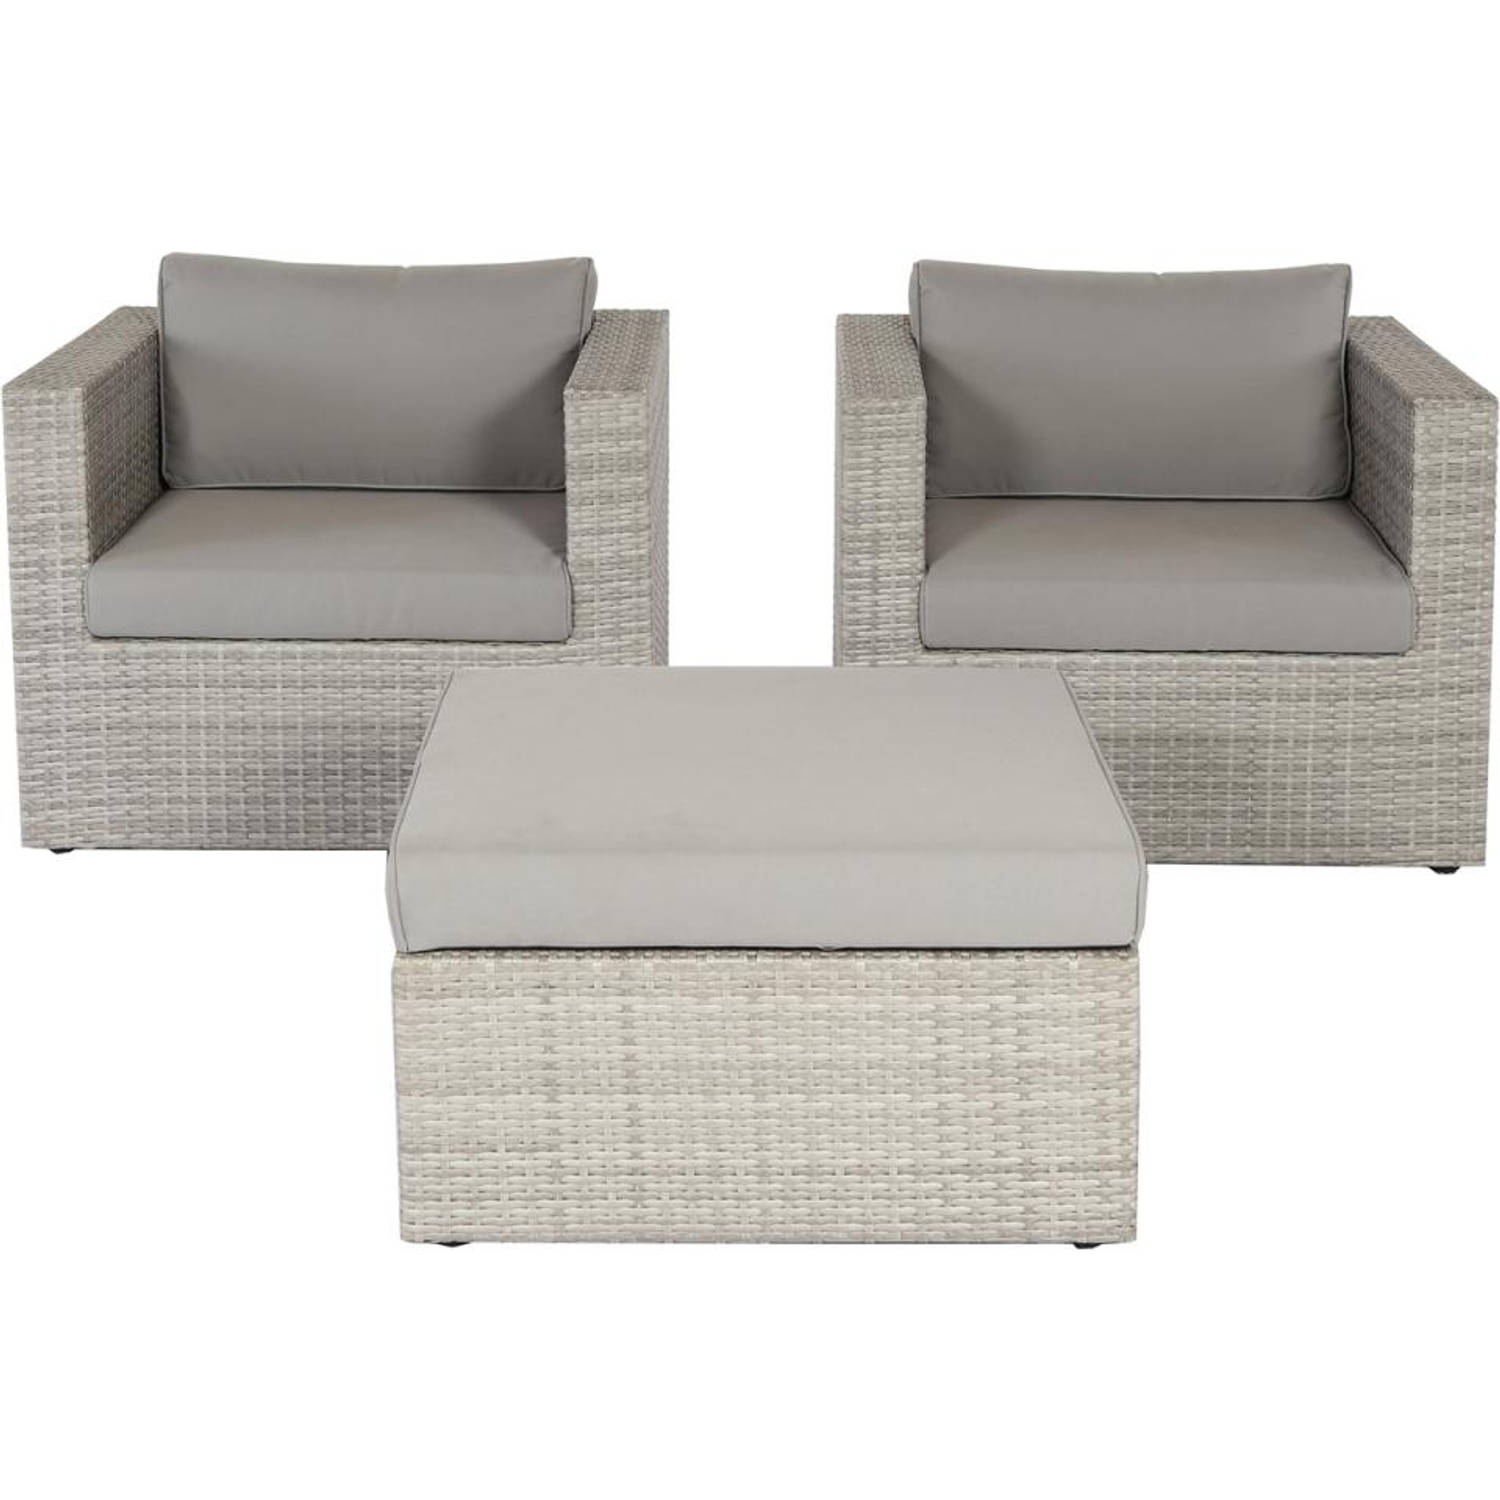 Royal Patio loungeset Bilbao 3-delig stoel